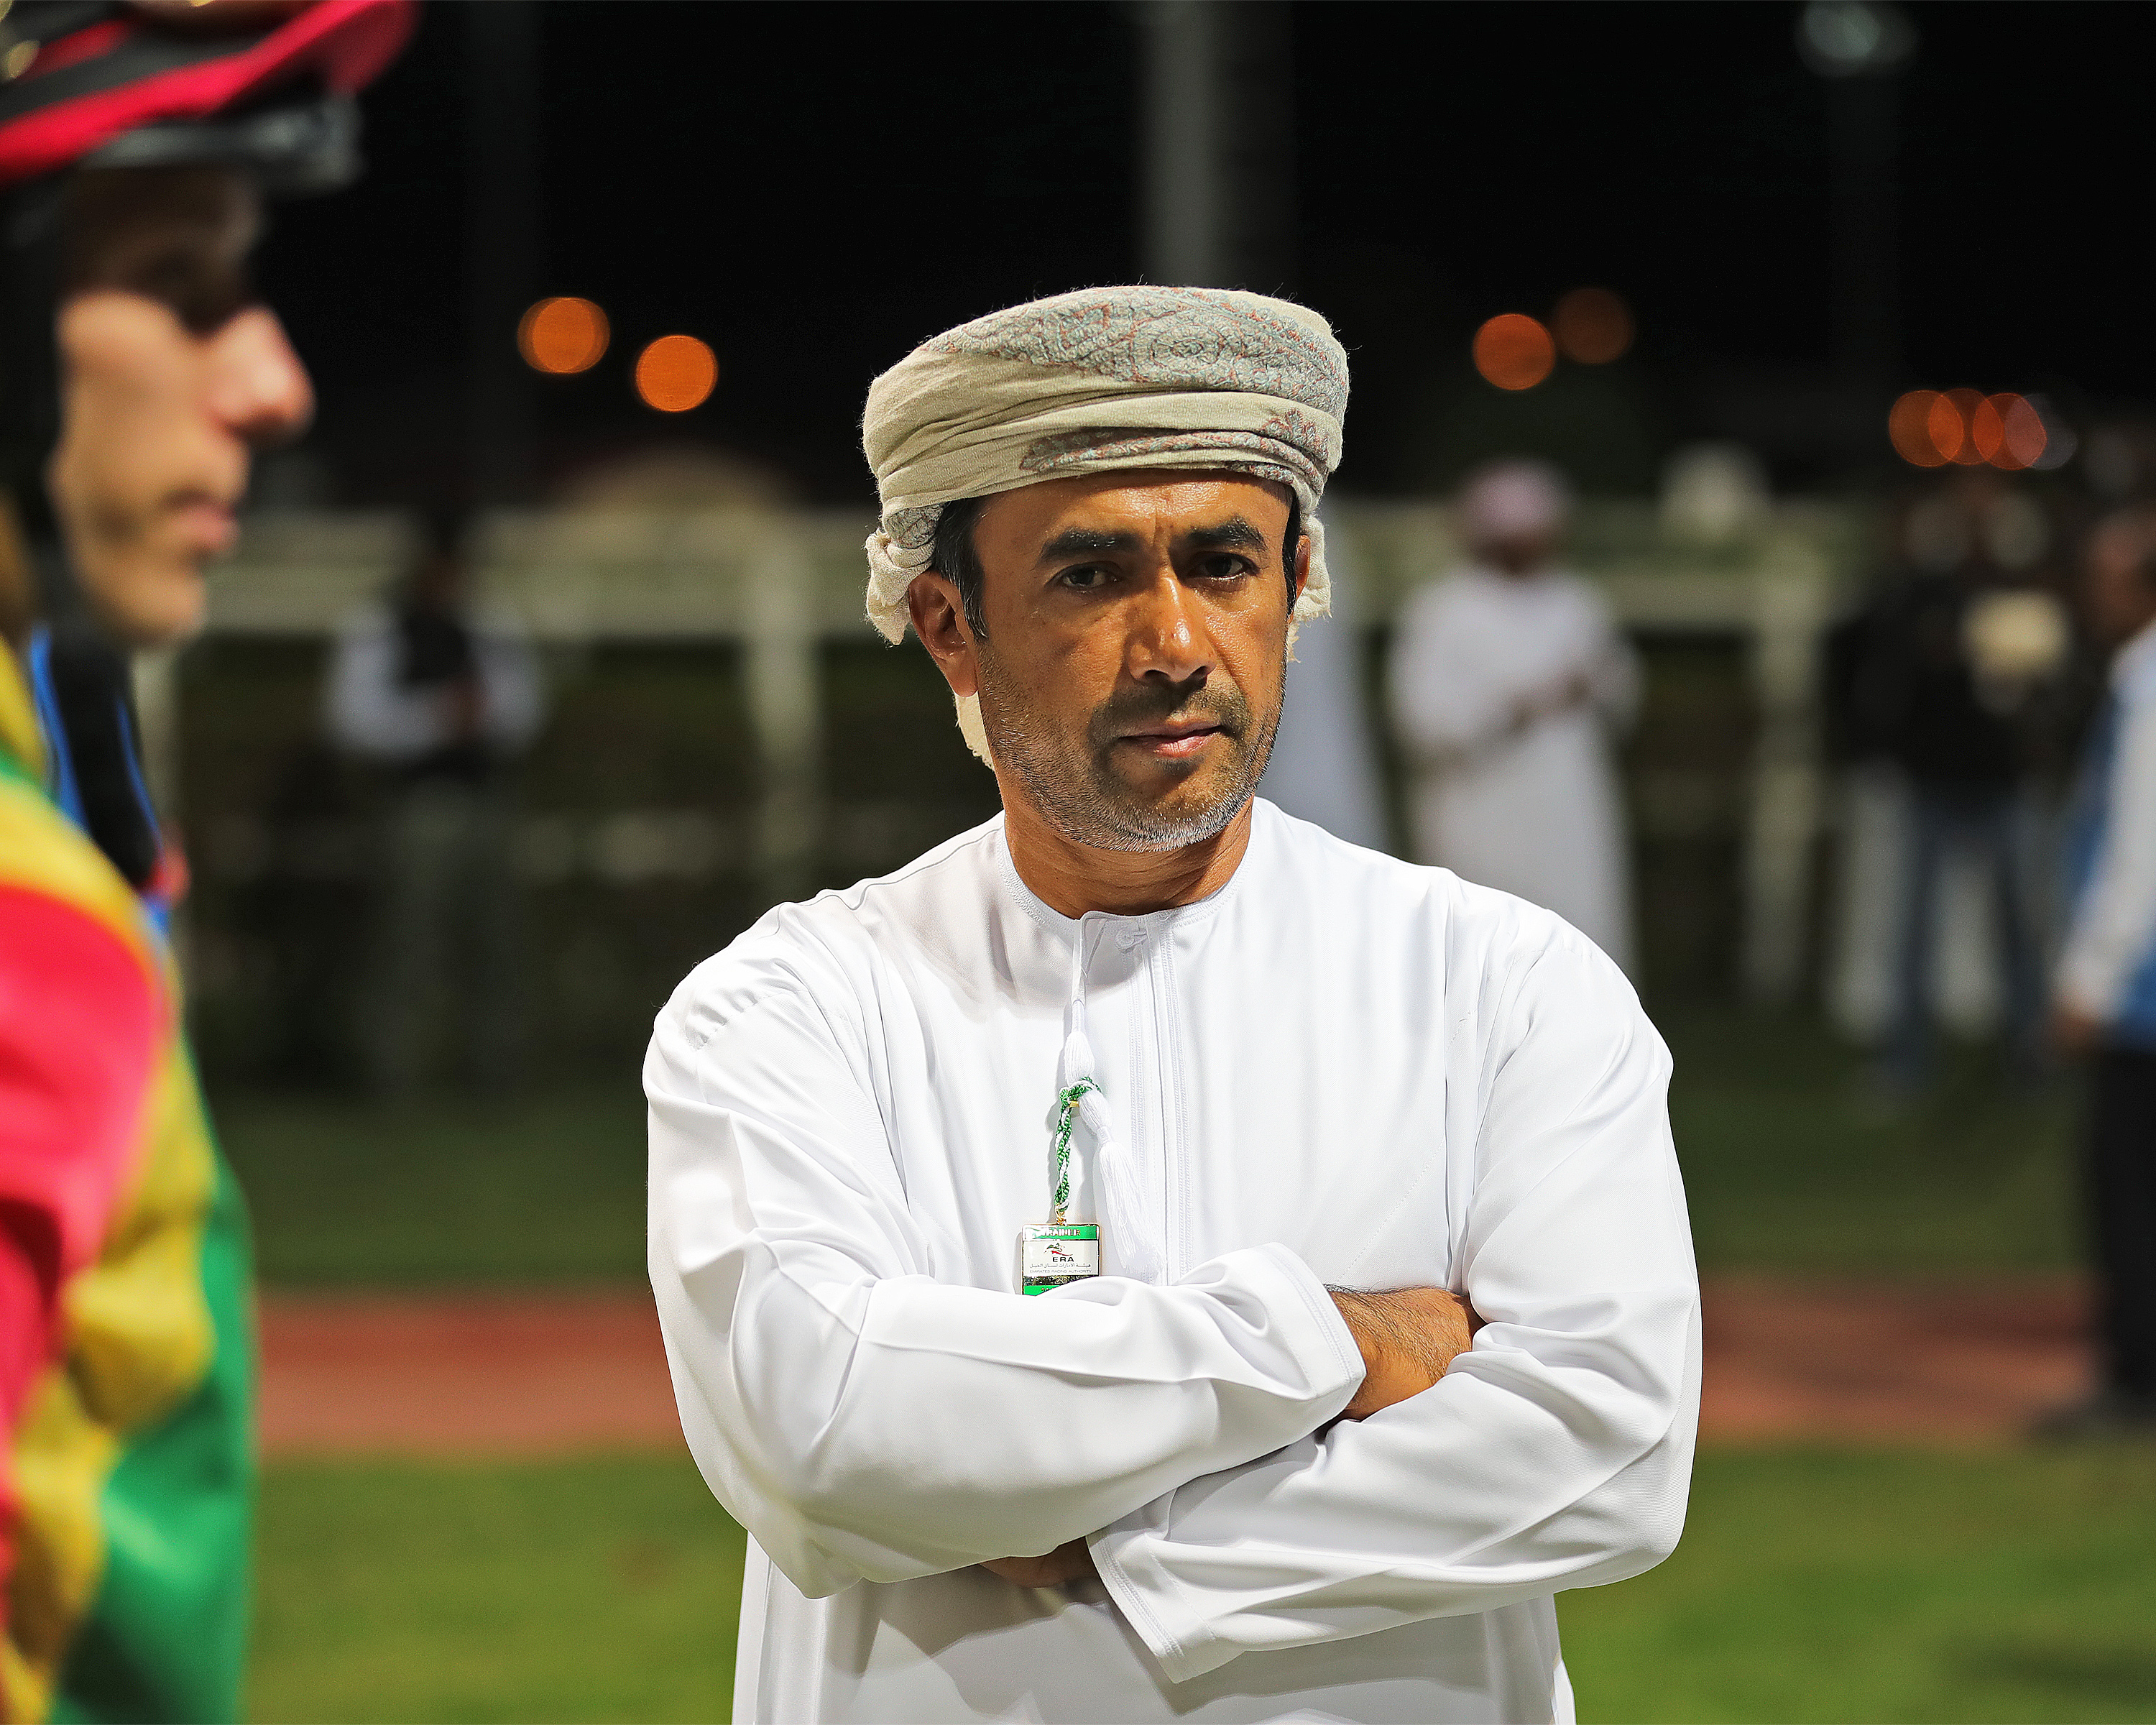 Ibrahim Al Hadhrami veut faire briller Oman à l'international